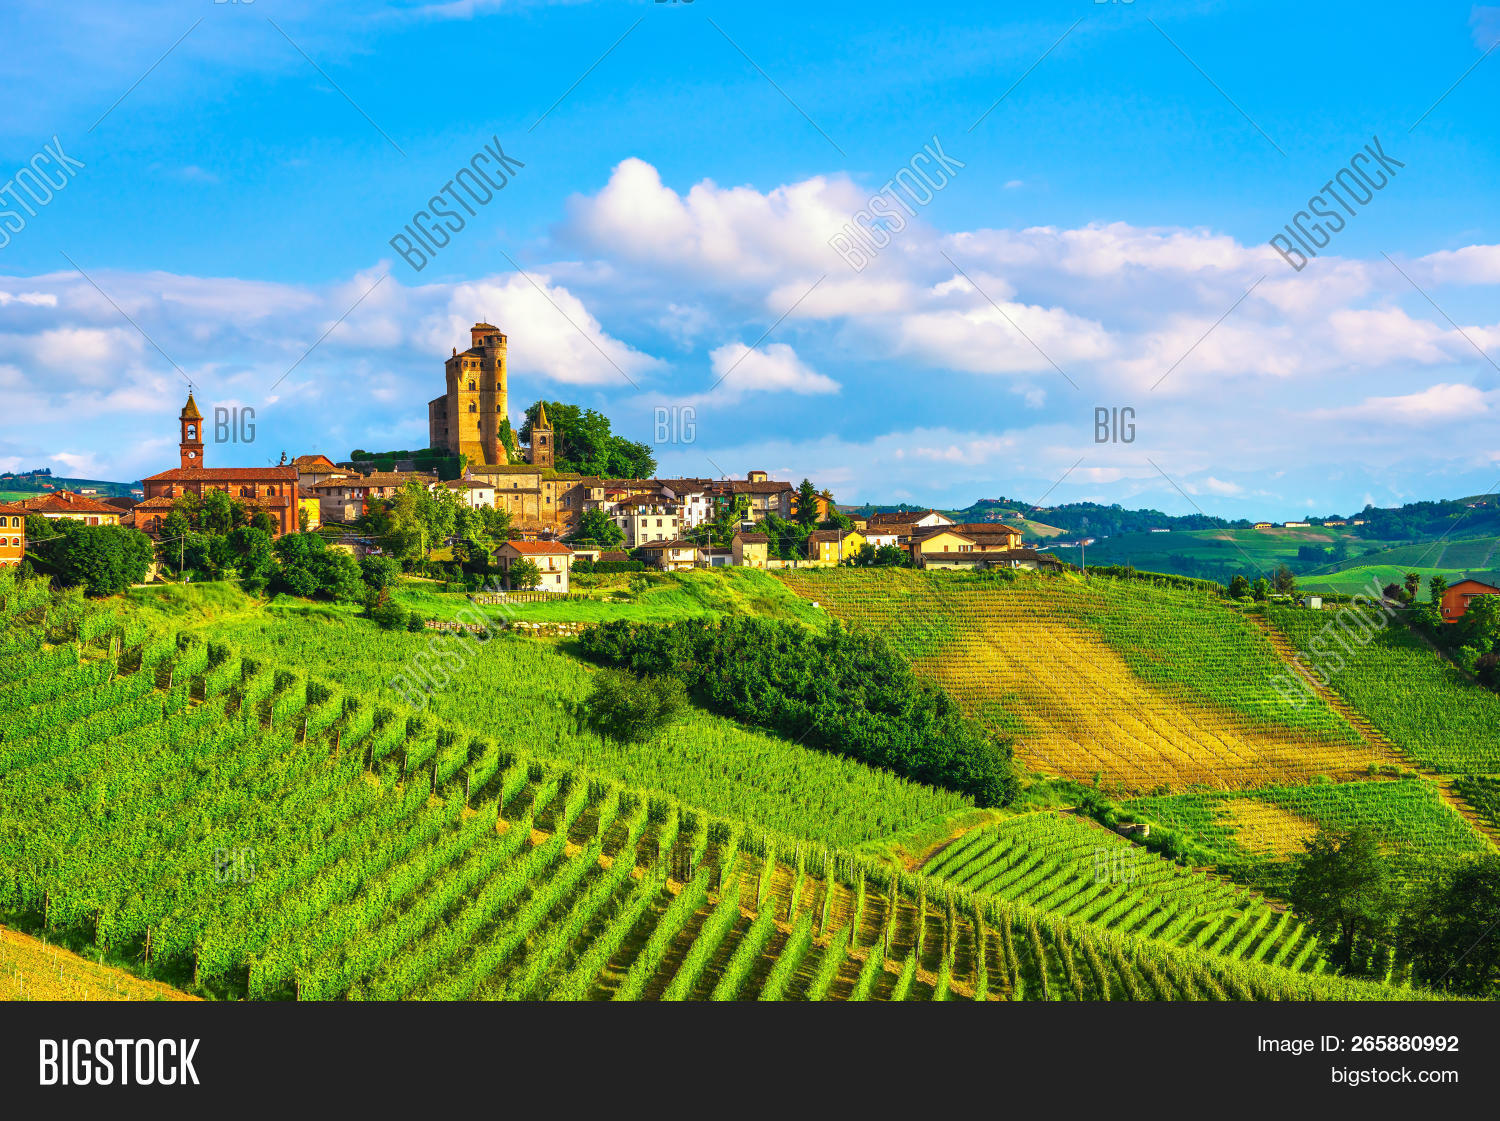 Langhe Vineyards Image & Photo (Free Trial) | Bigstock